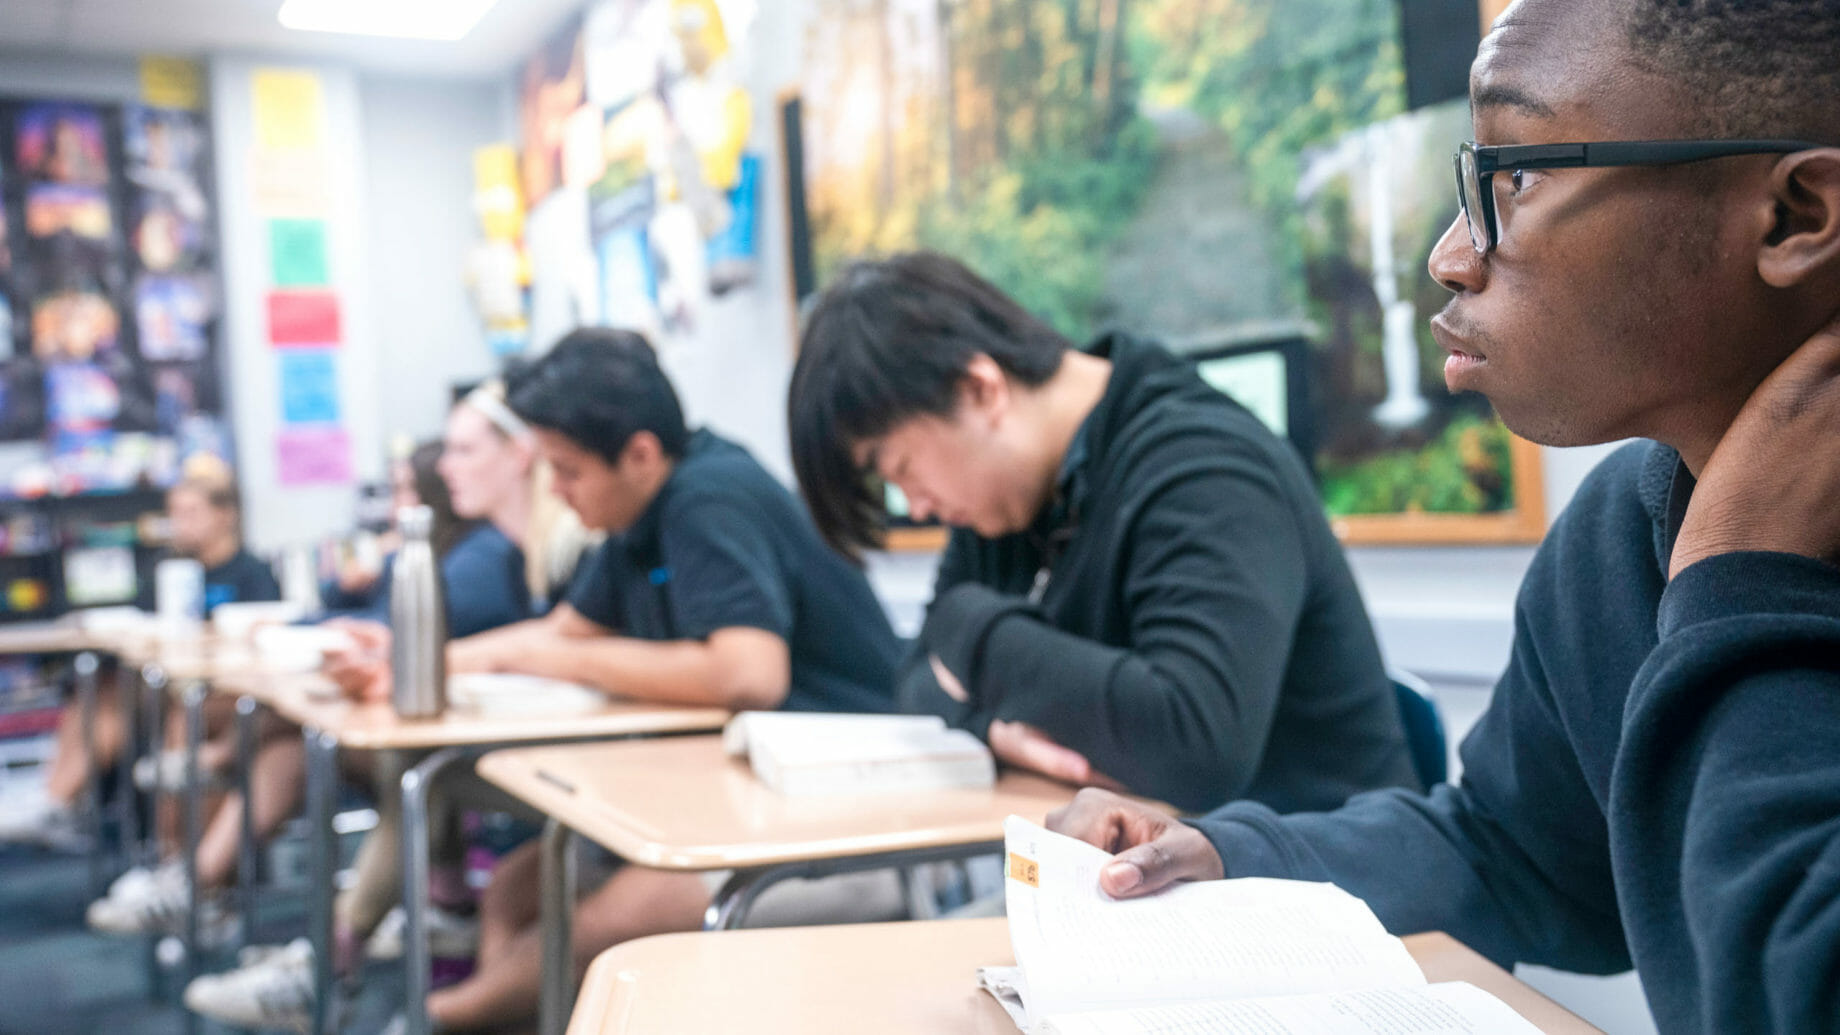 Students Focusing in Classroom